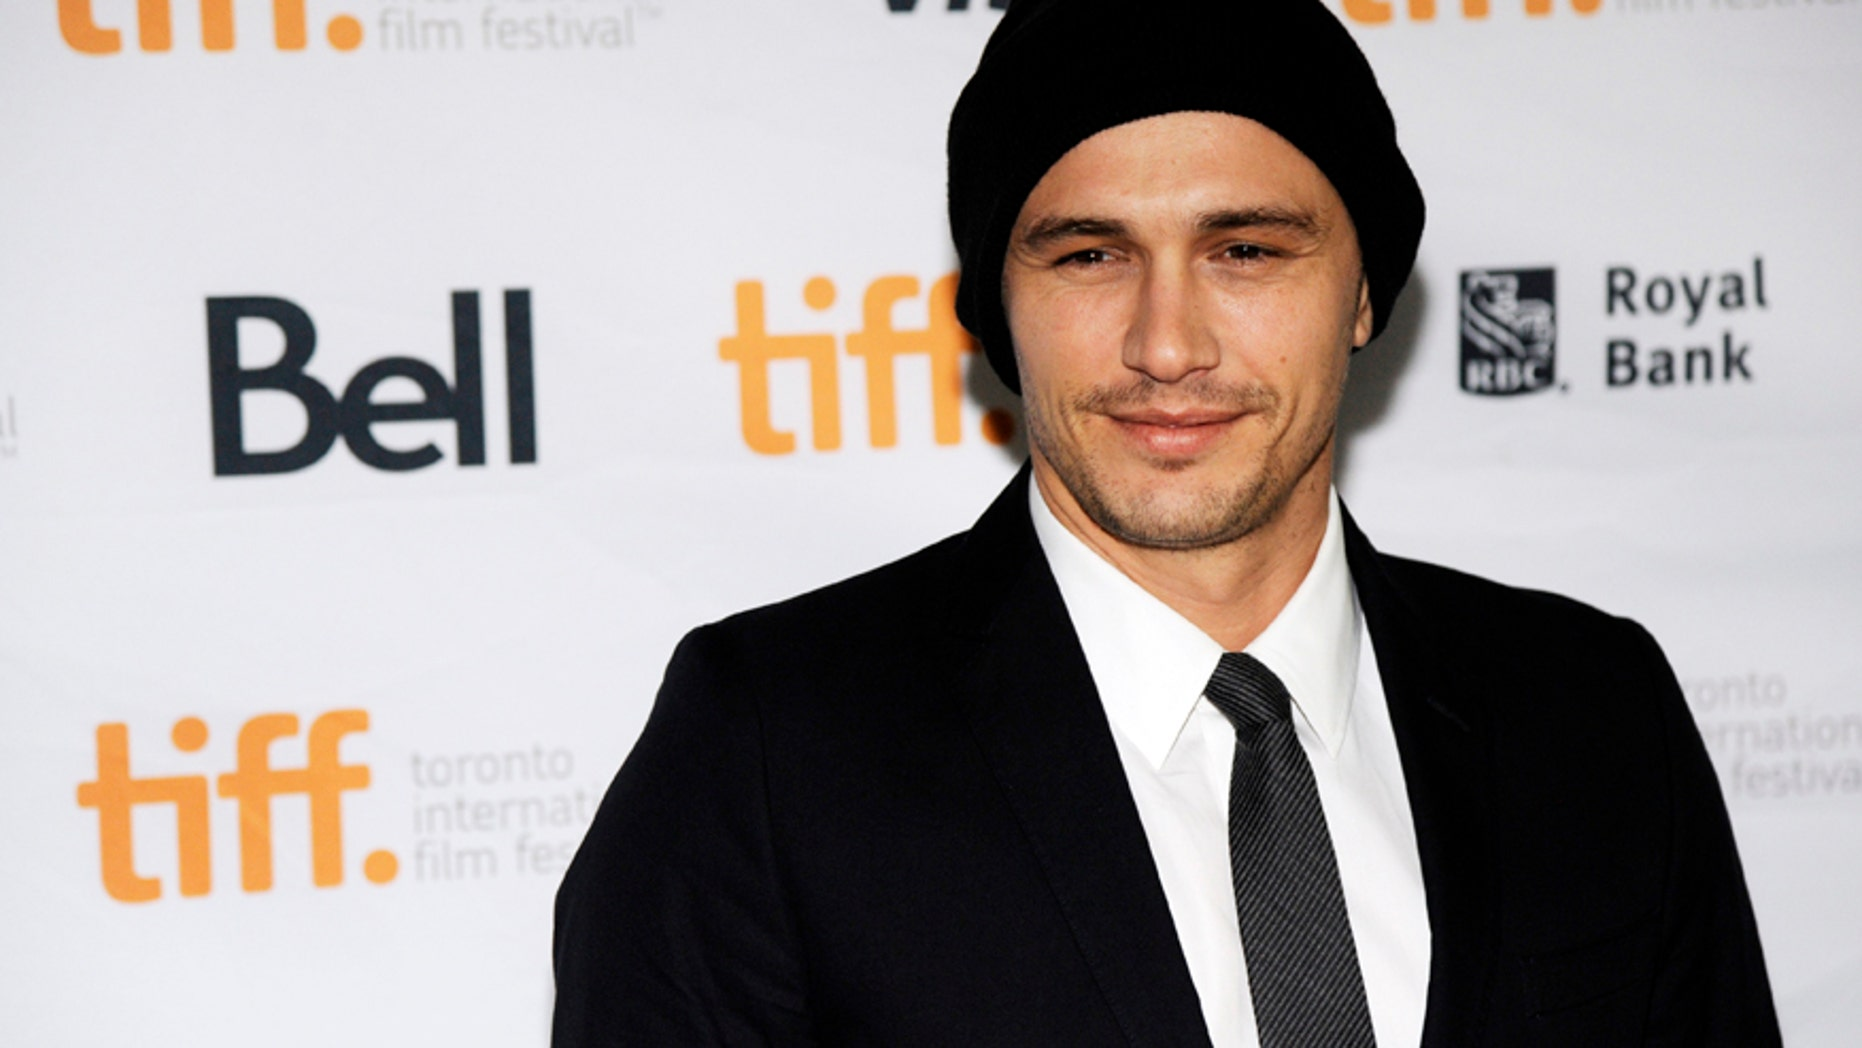 """James Franco, director of """"The Sound and the Fury,"""" poses at the premiere of the film at Ryerson Theatre during the 2014 Toronto International Film Festival on Saturday, Sept. 6, 2014, in Toronto."""